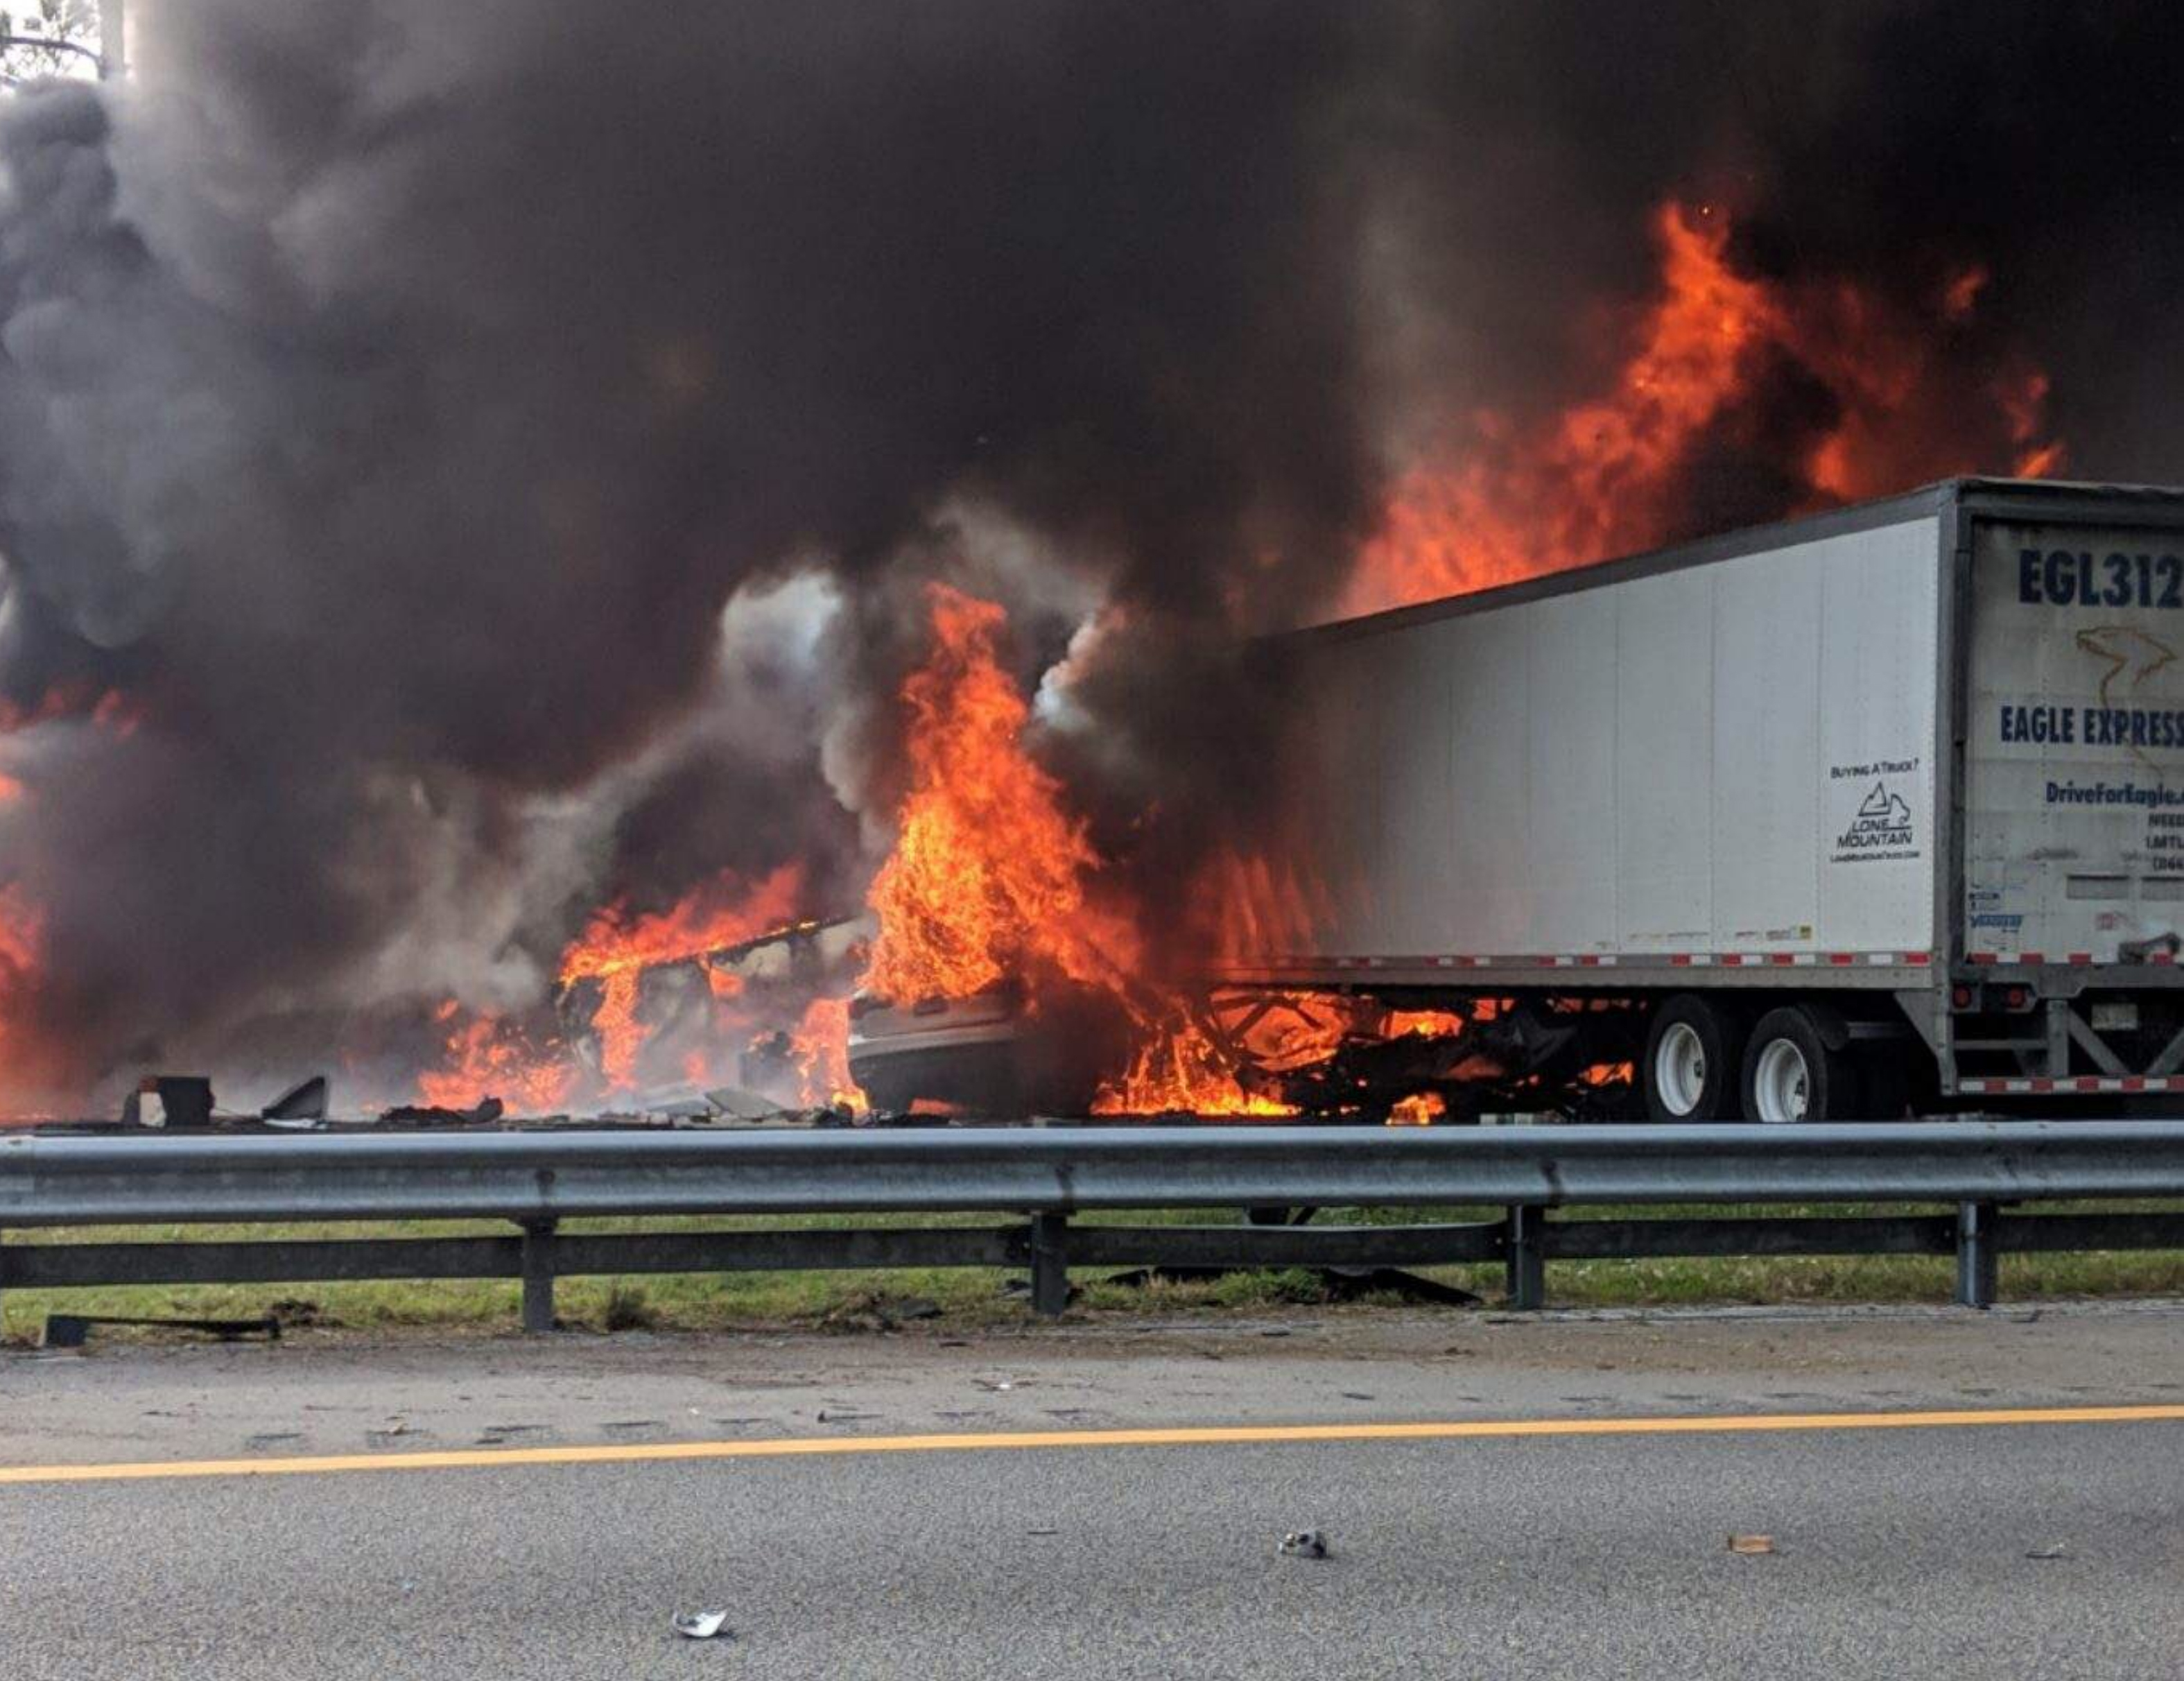 Flames engulf vehicles after a fiery crash along Interstate 75 on Thursday, Jan. 3, 2019, about a mile south of Alachua, near Gainesville, Fla. Highway officials say at least seven people have died after a crash and diesel fuel spill sparked a massive fire along the Florida interstate.